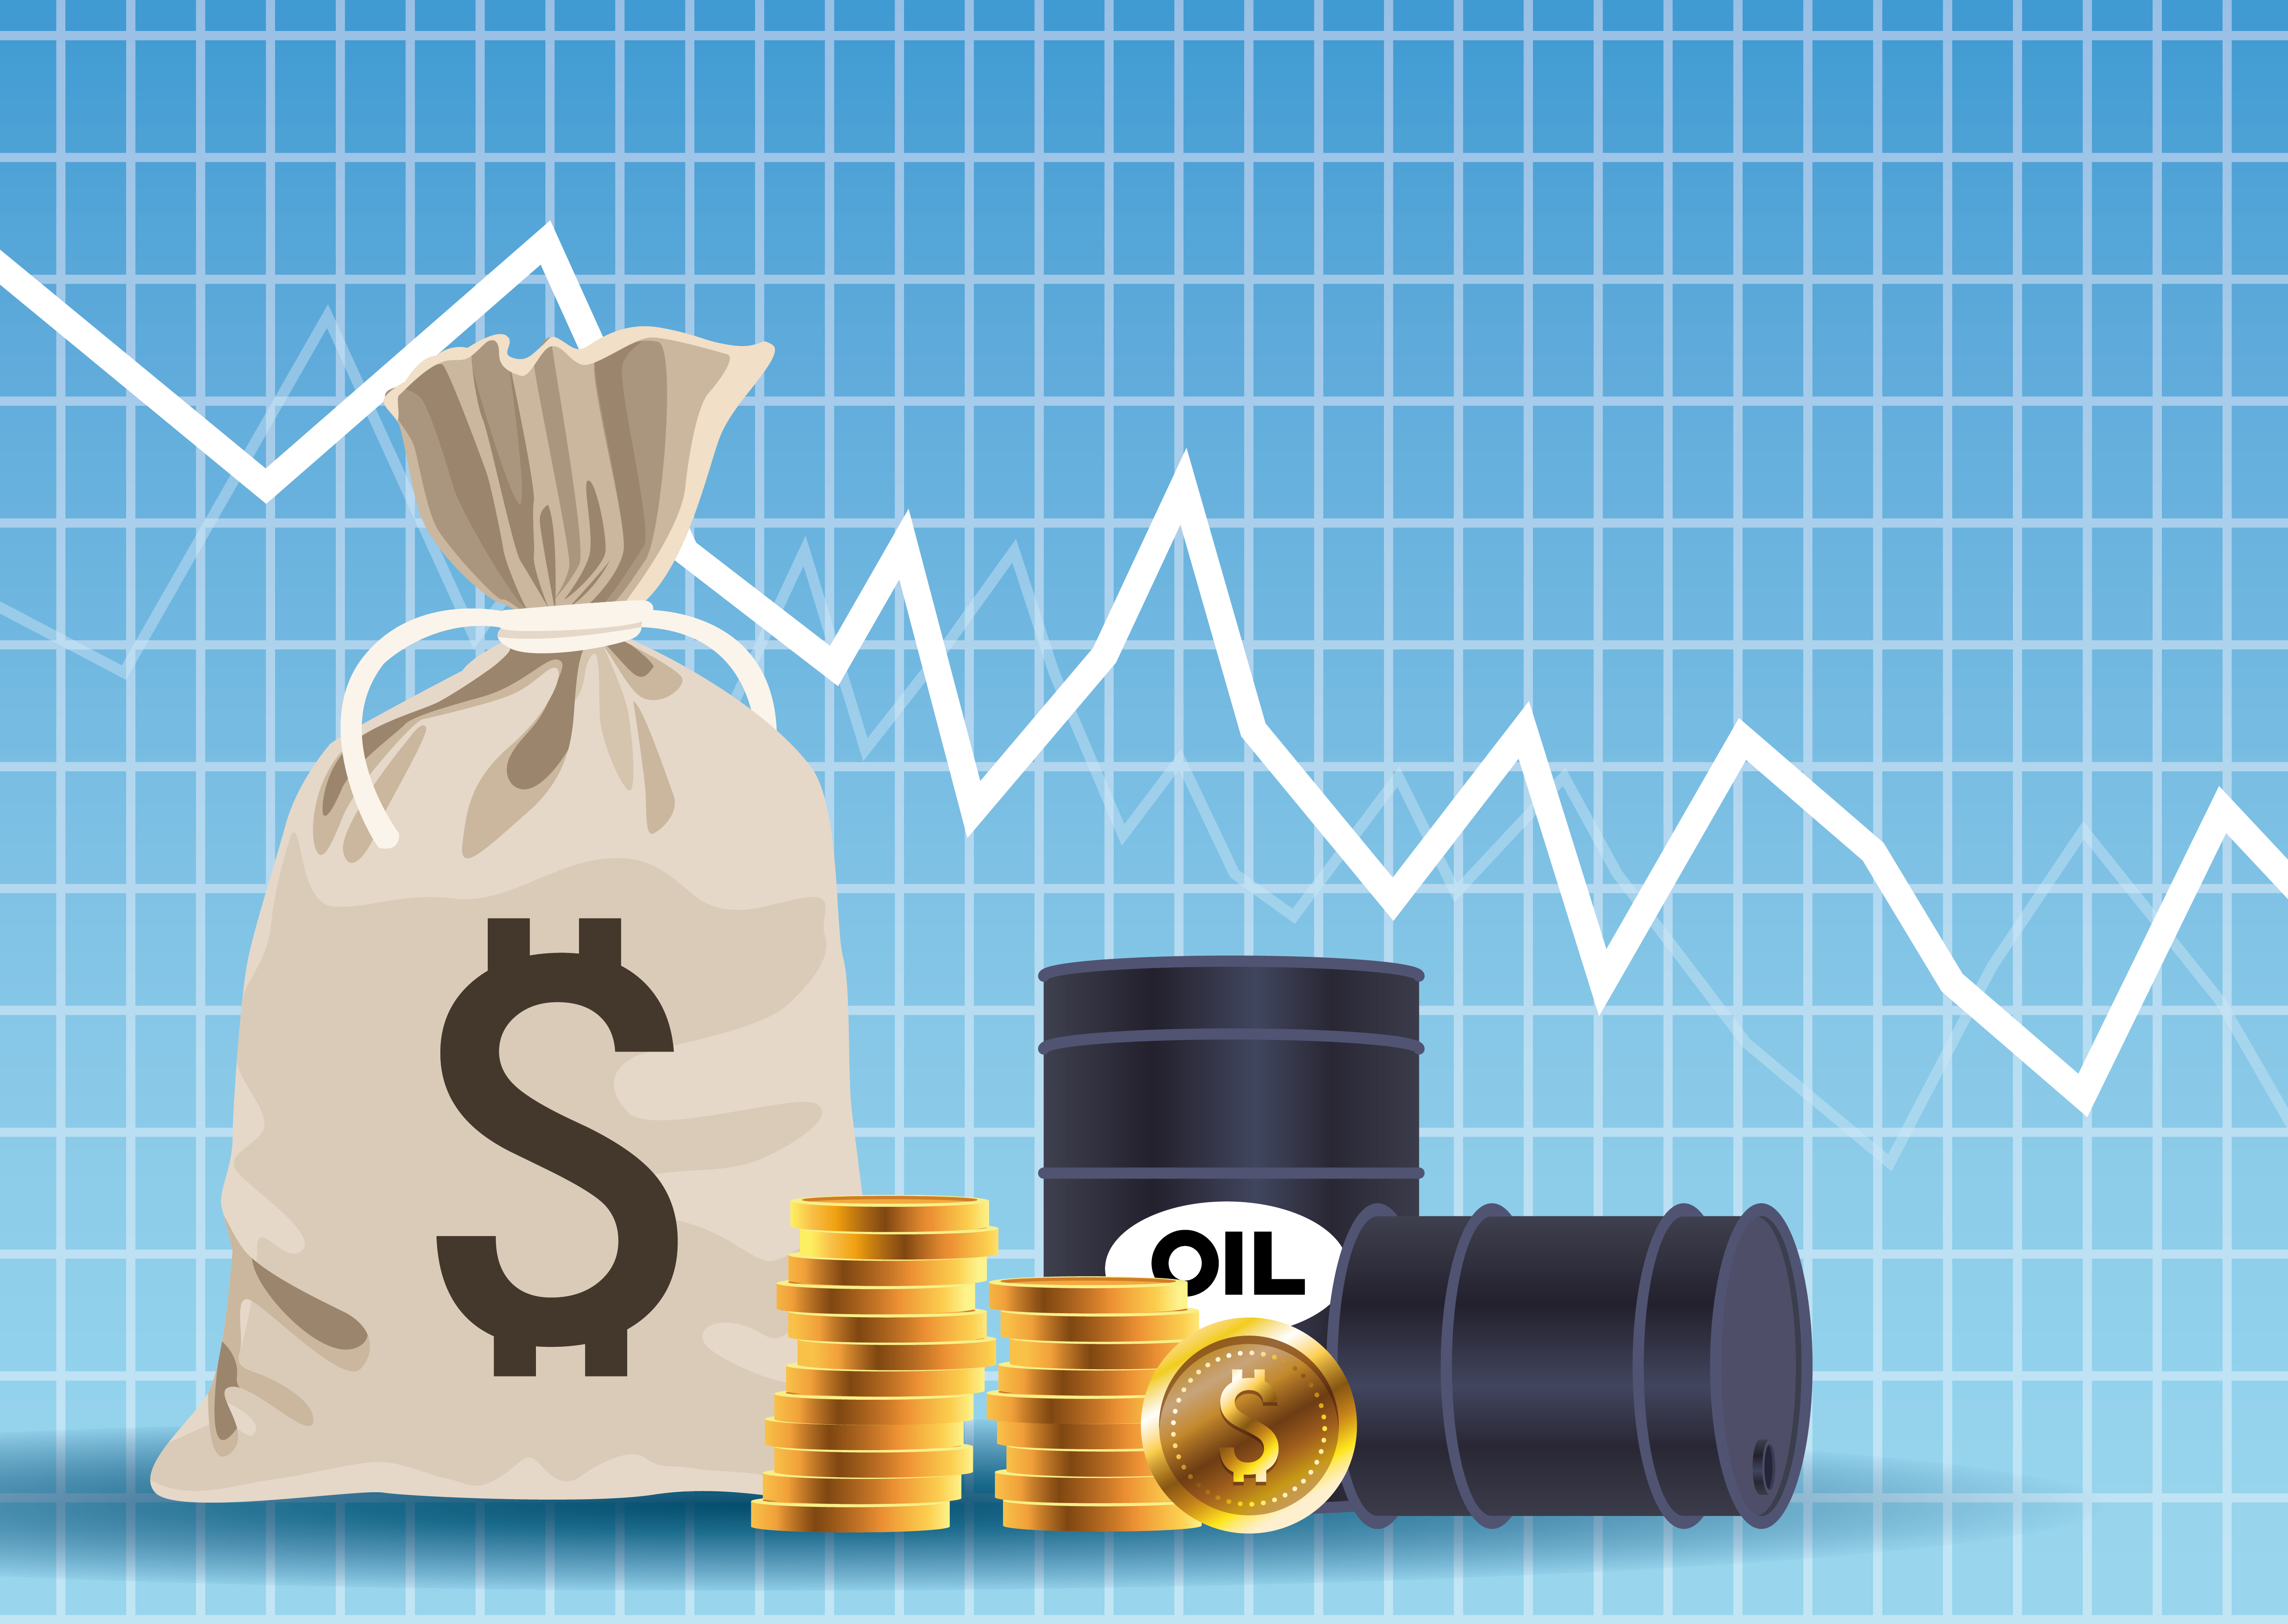 Oil price market with barrels and coins money bag vector